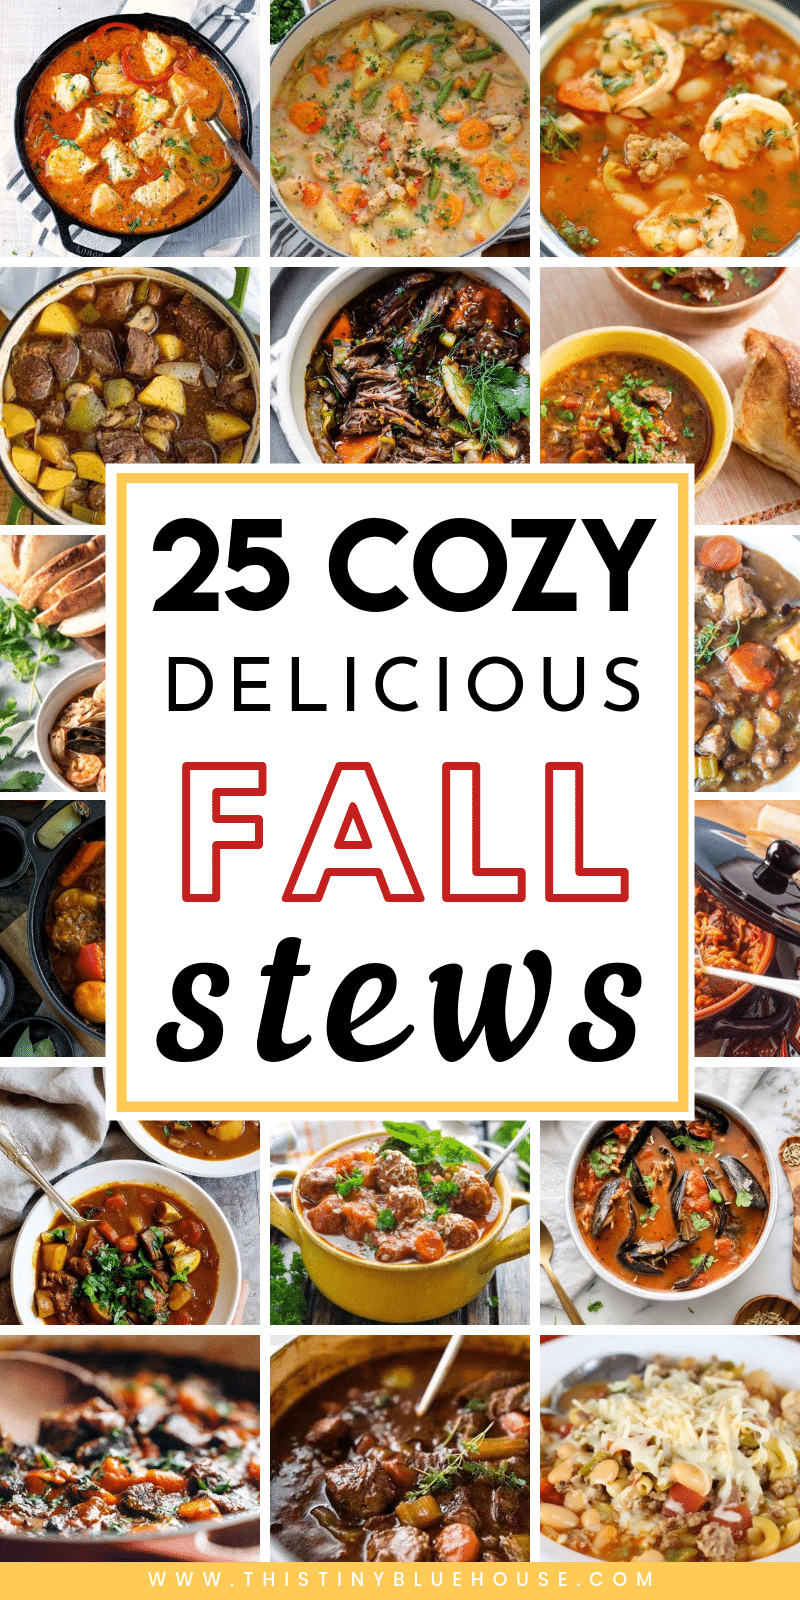 Here are over 20 delicious hearty stews you just gotta try this fall. These easy and delicious recipes are the perfect dinner on cool autumn nights. #stewrecipes #fallstewrecipes #heartystewrecipe #beststewrecipes #busyschoolnightrecipes #easyfallrecipes #easywinterrecipes #easyfalldinnerideas